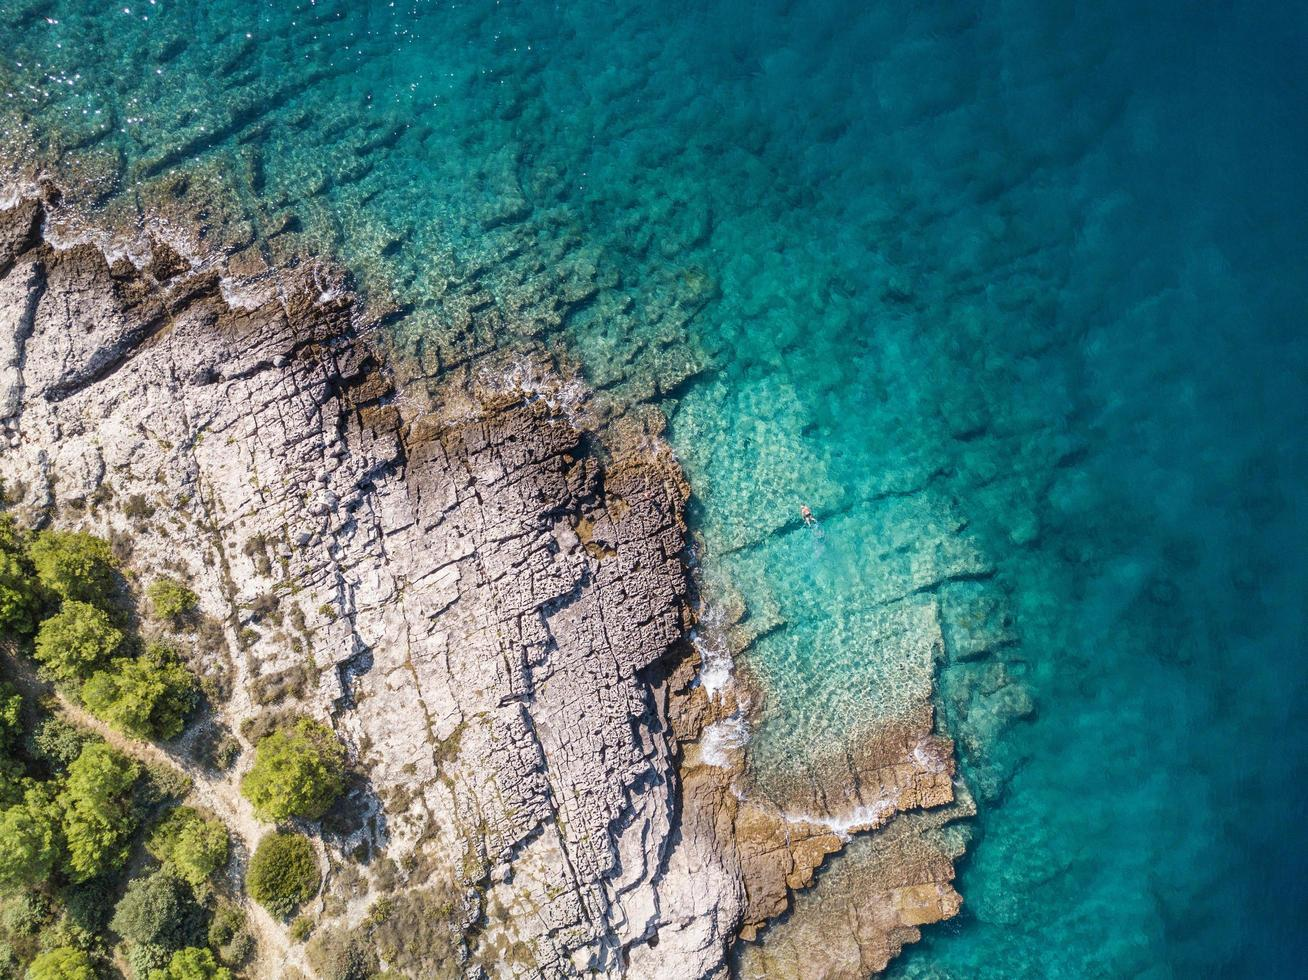 Aerial view of solo snorkeler in turquoise coastal  green waters  photo